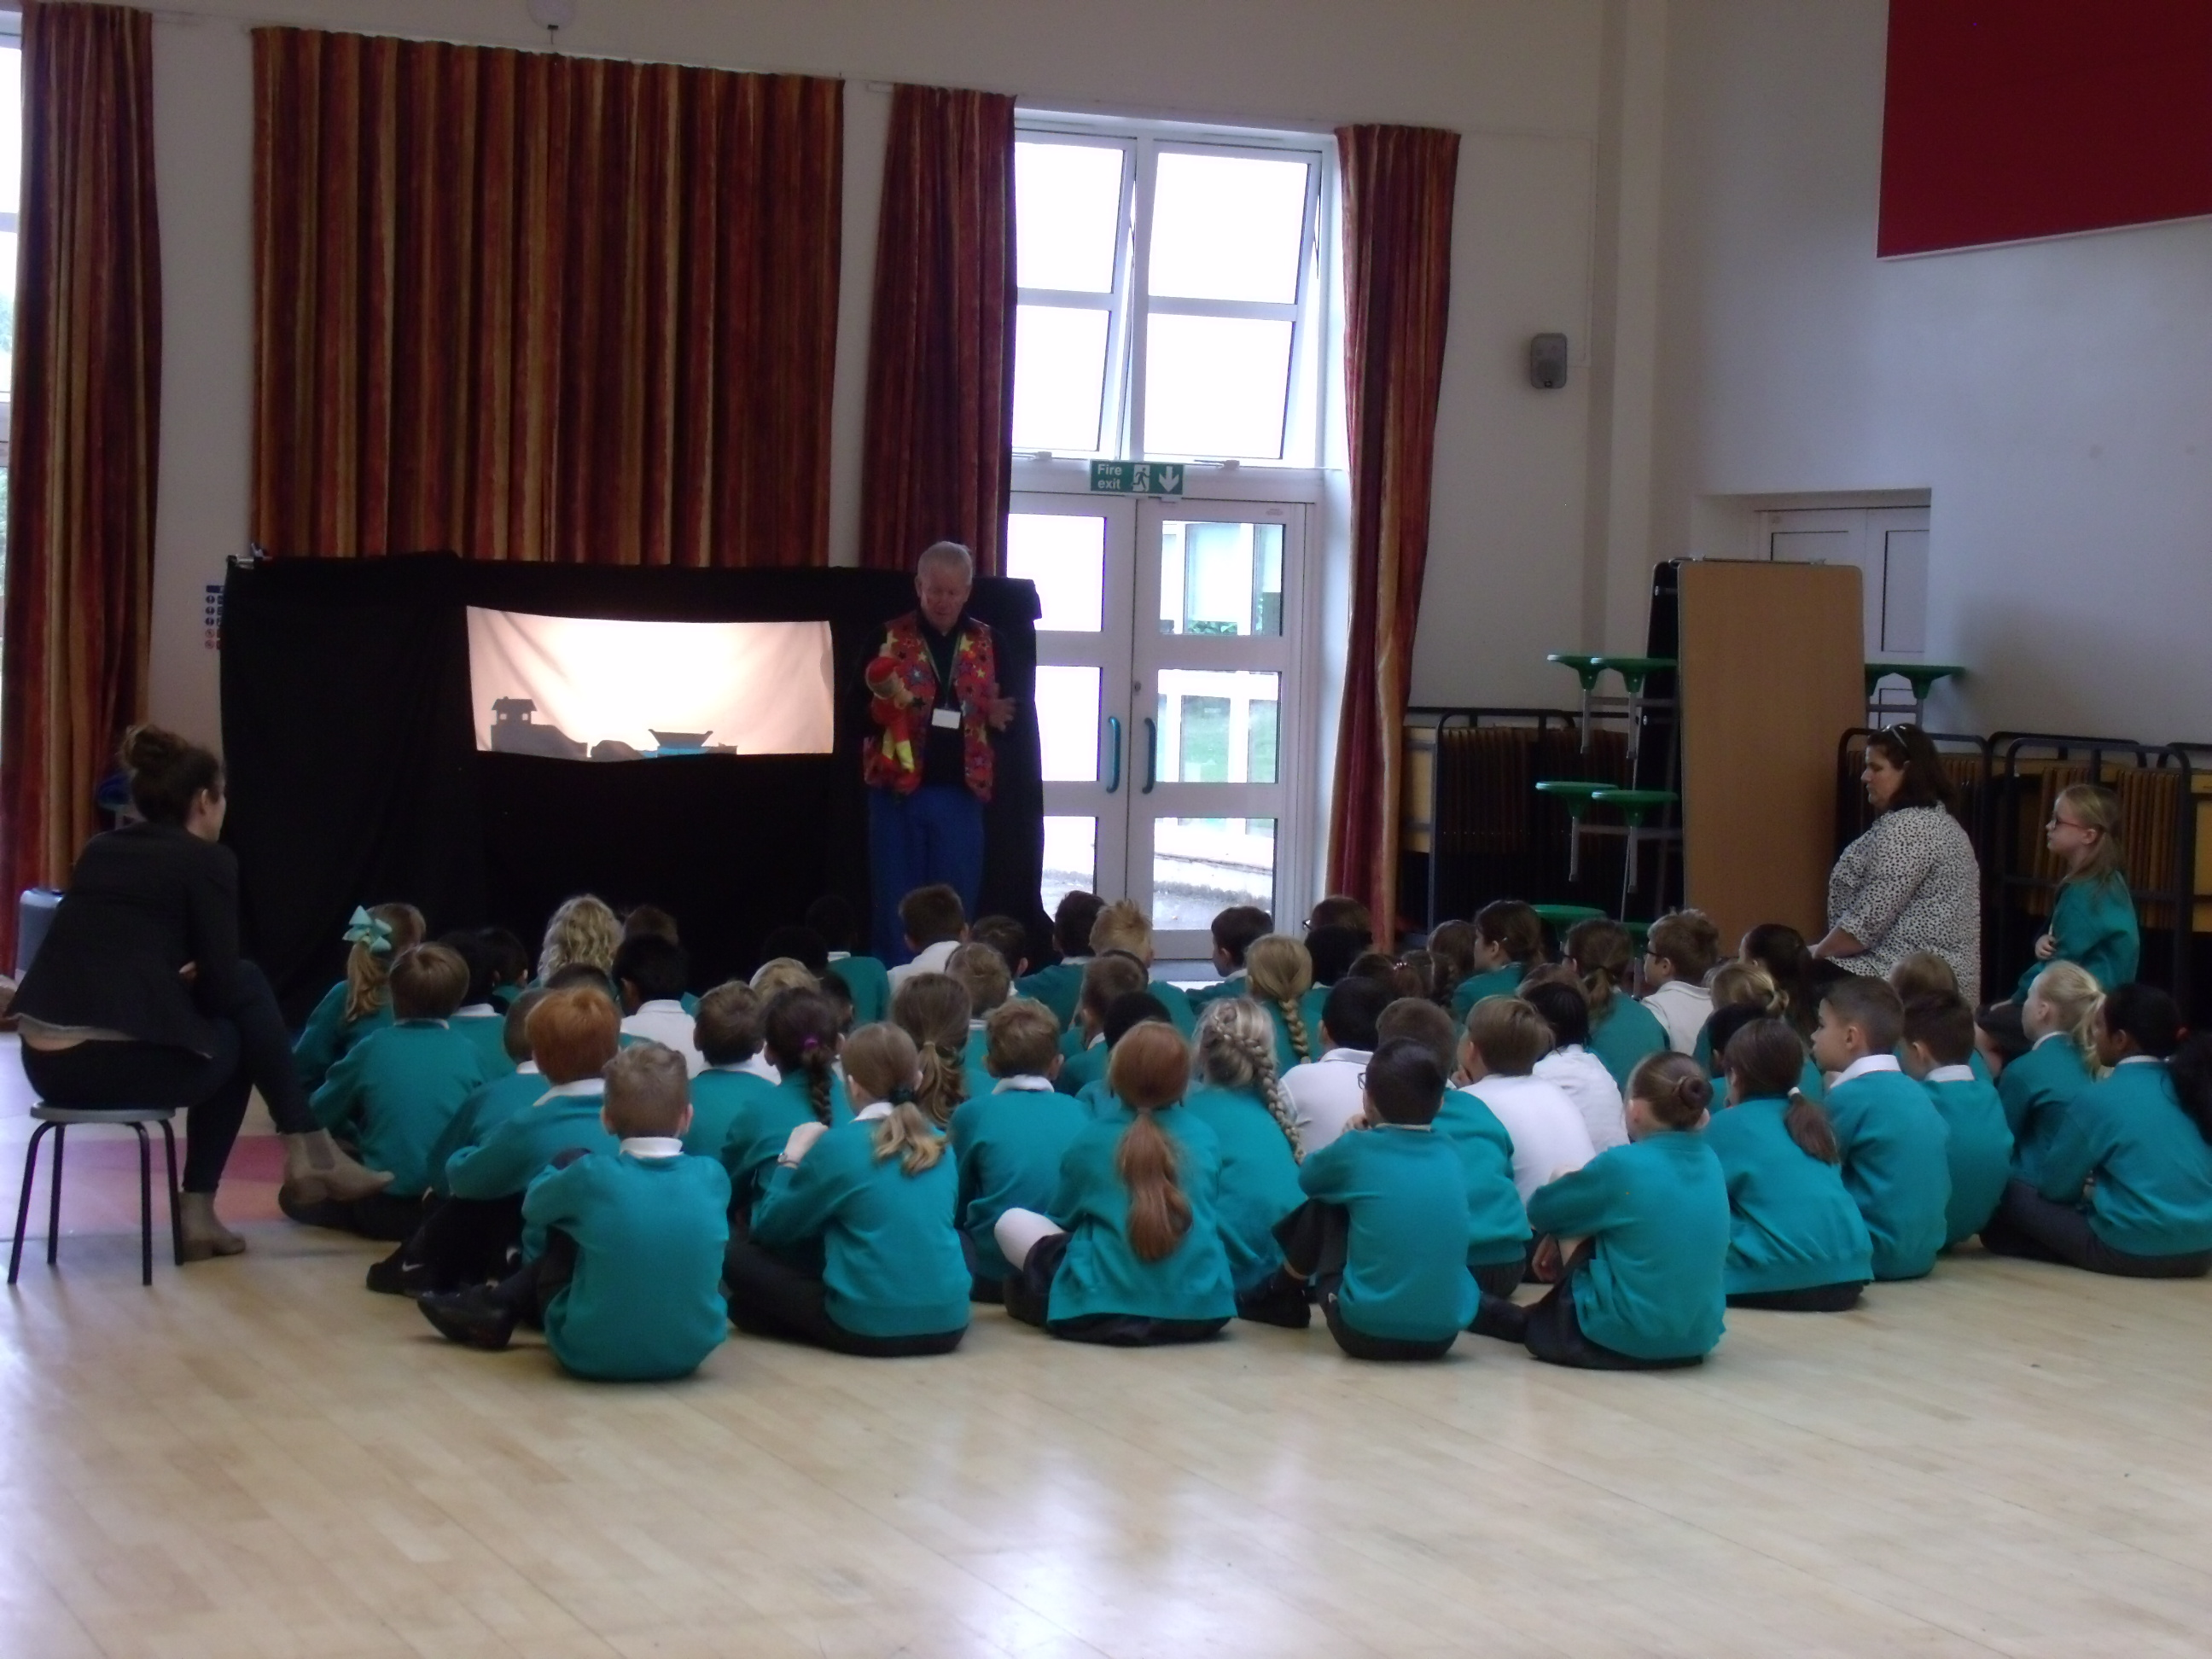 Teacher demonstrating shadow puppetry that the children have made